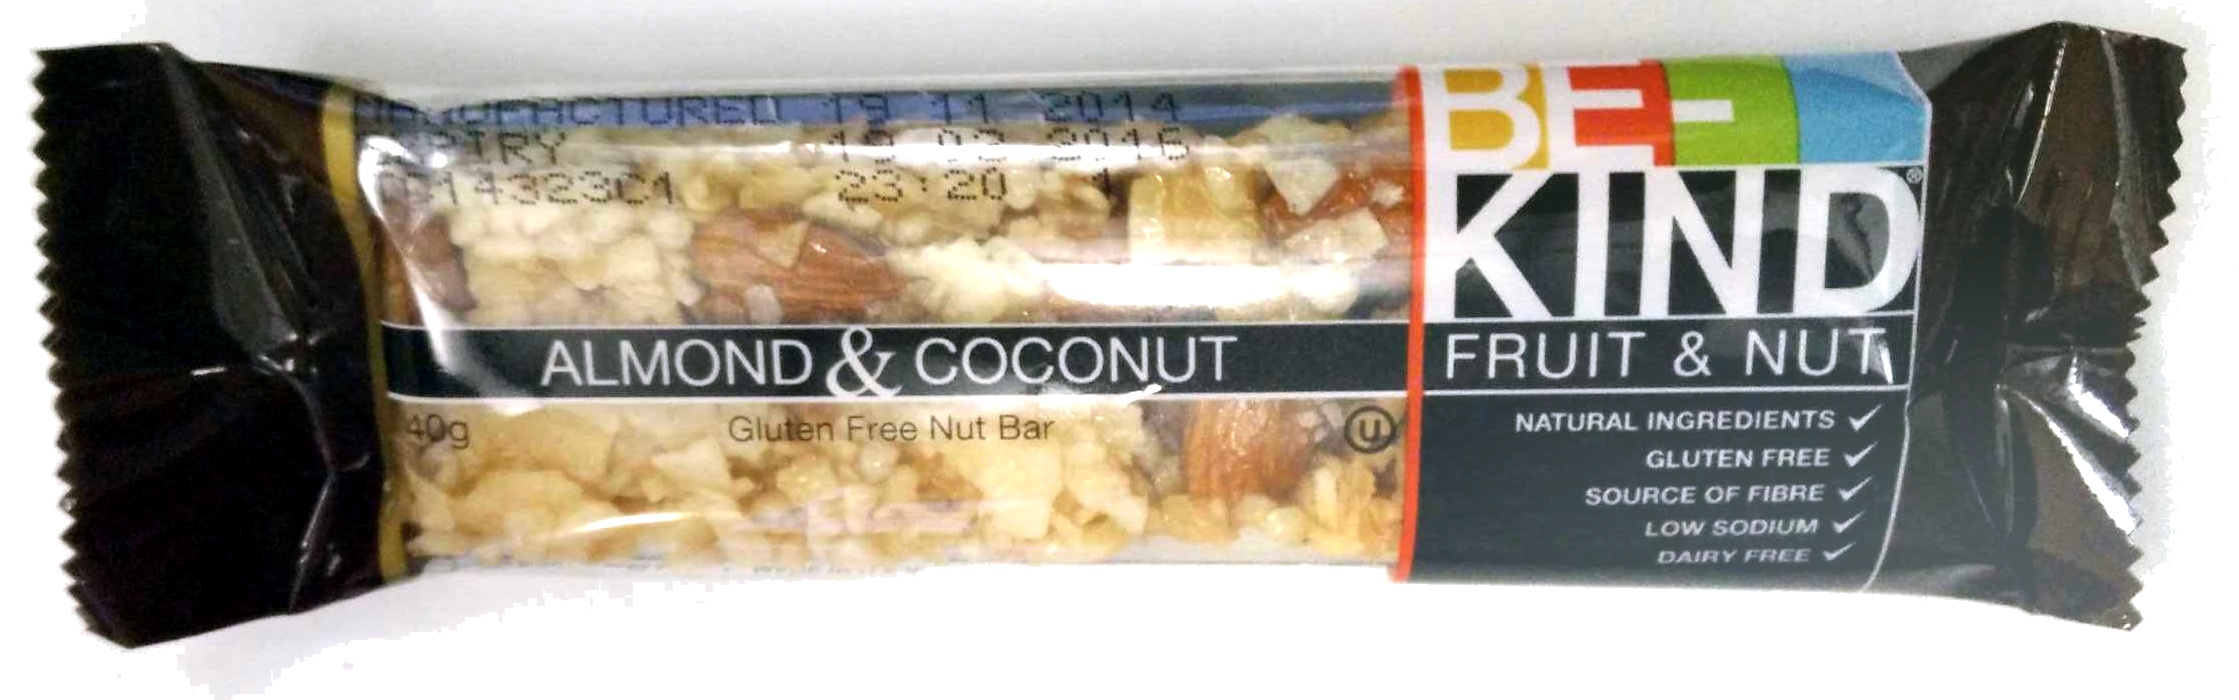 Almond & Coconut Fruit & Nut Bar - Product